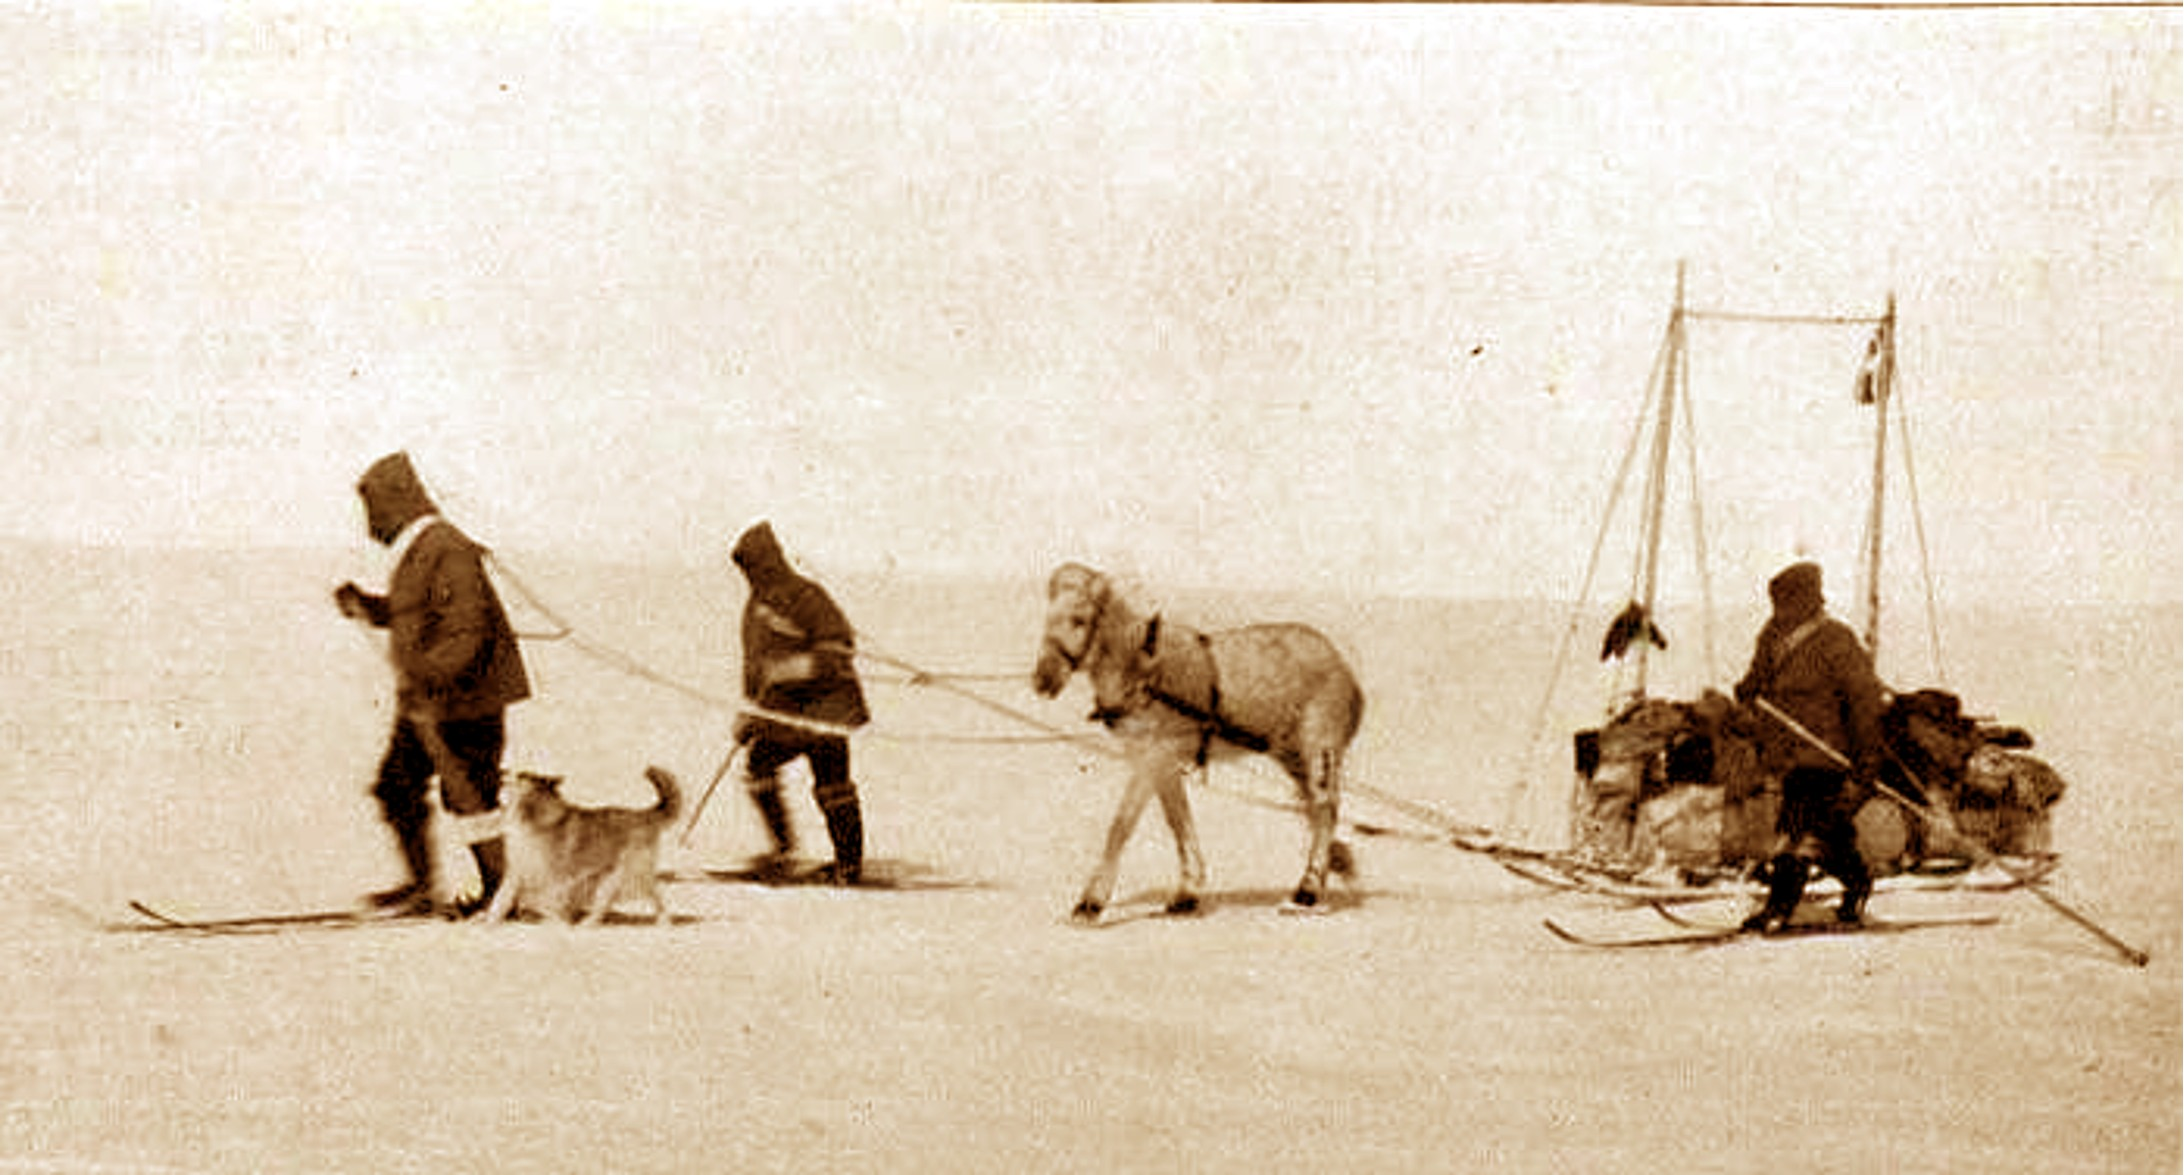 05 - Koch and pony in Greenland